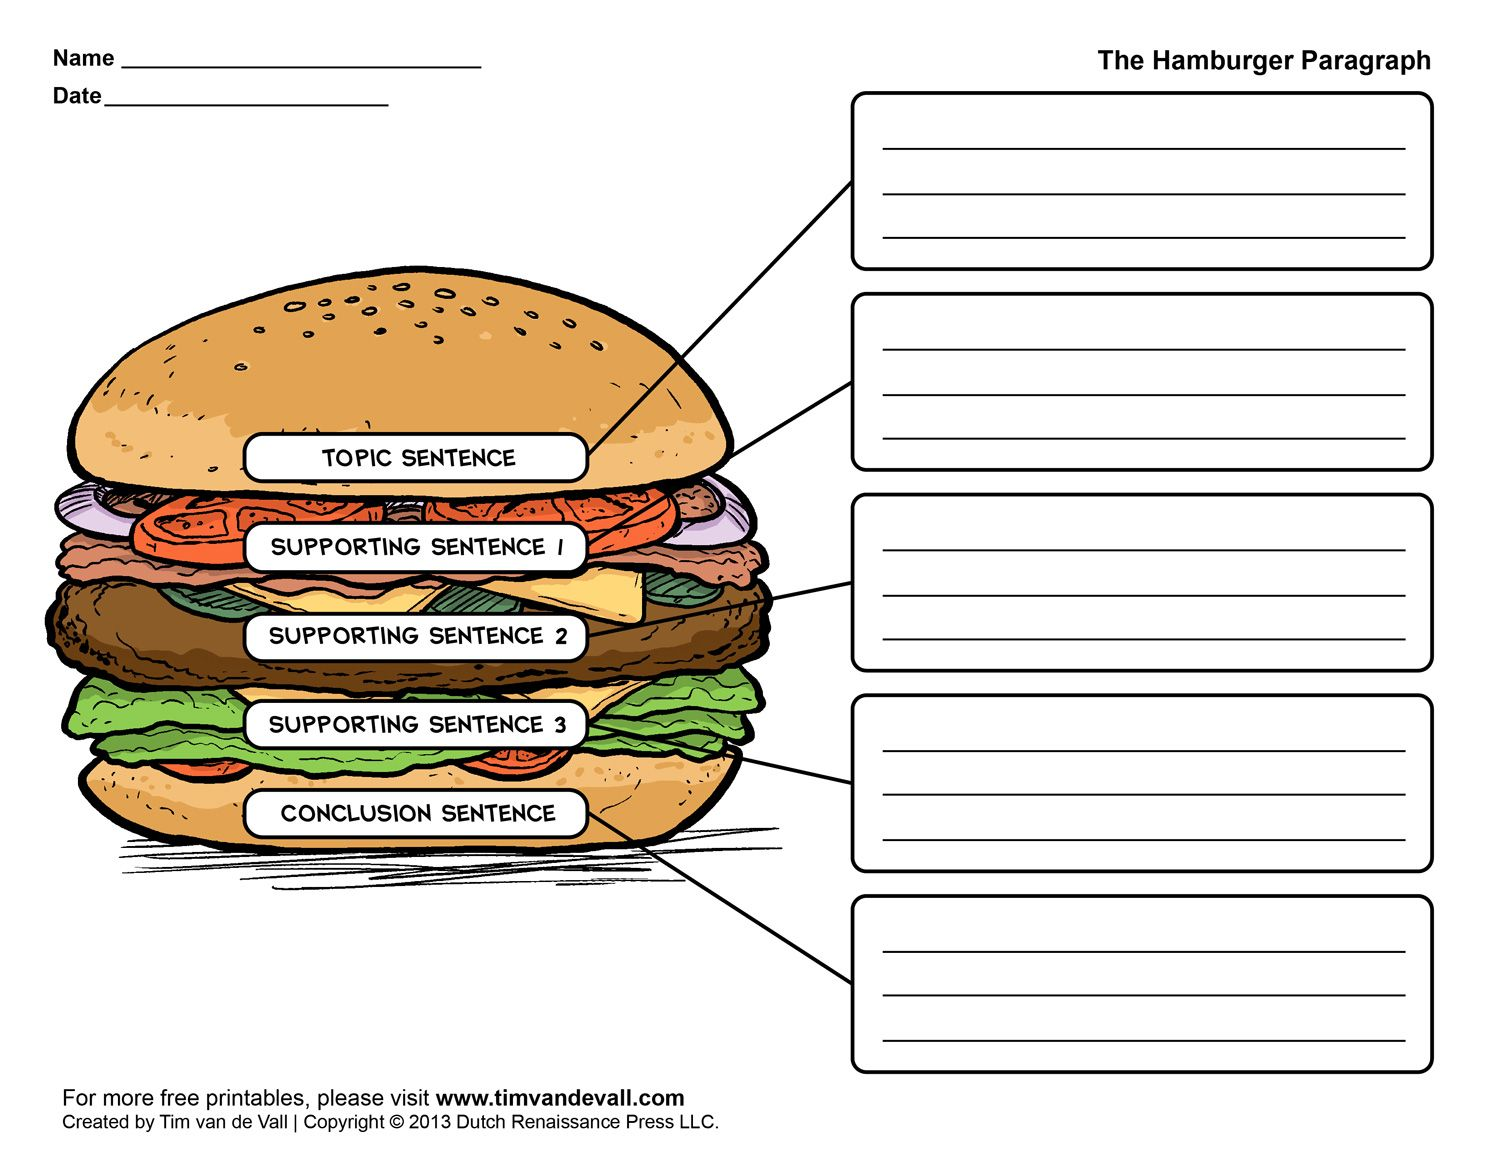 hamburger paragraph worksheet language arts printables hamburger paragraph worksheet language arts printables